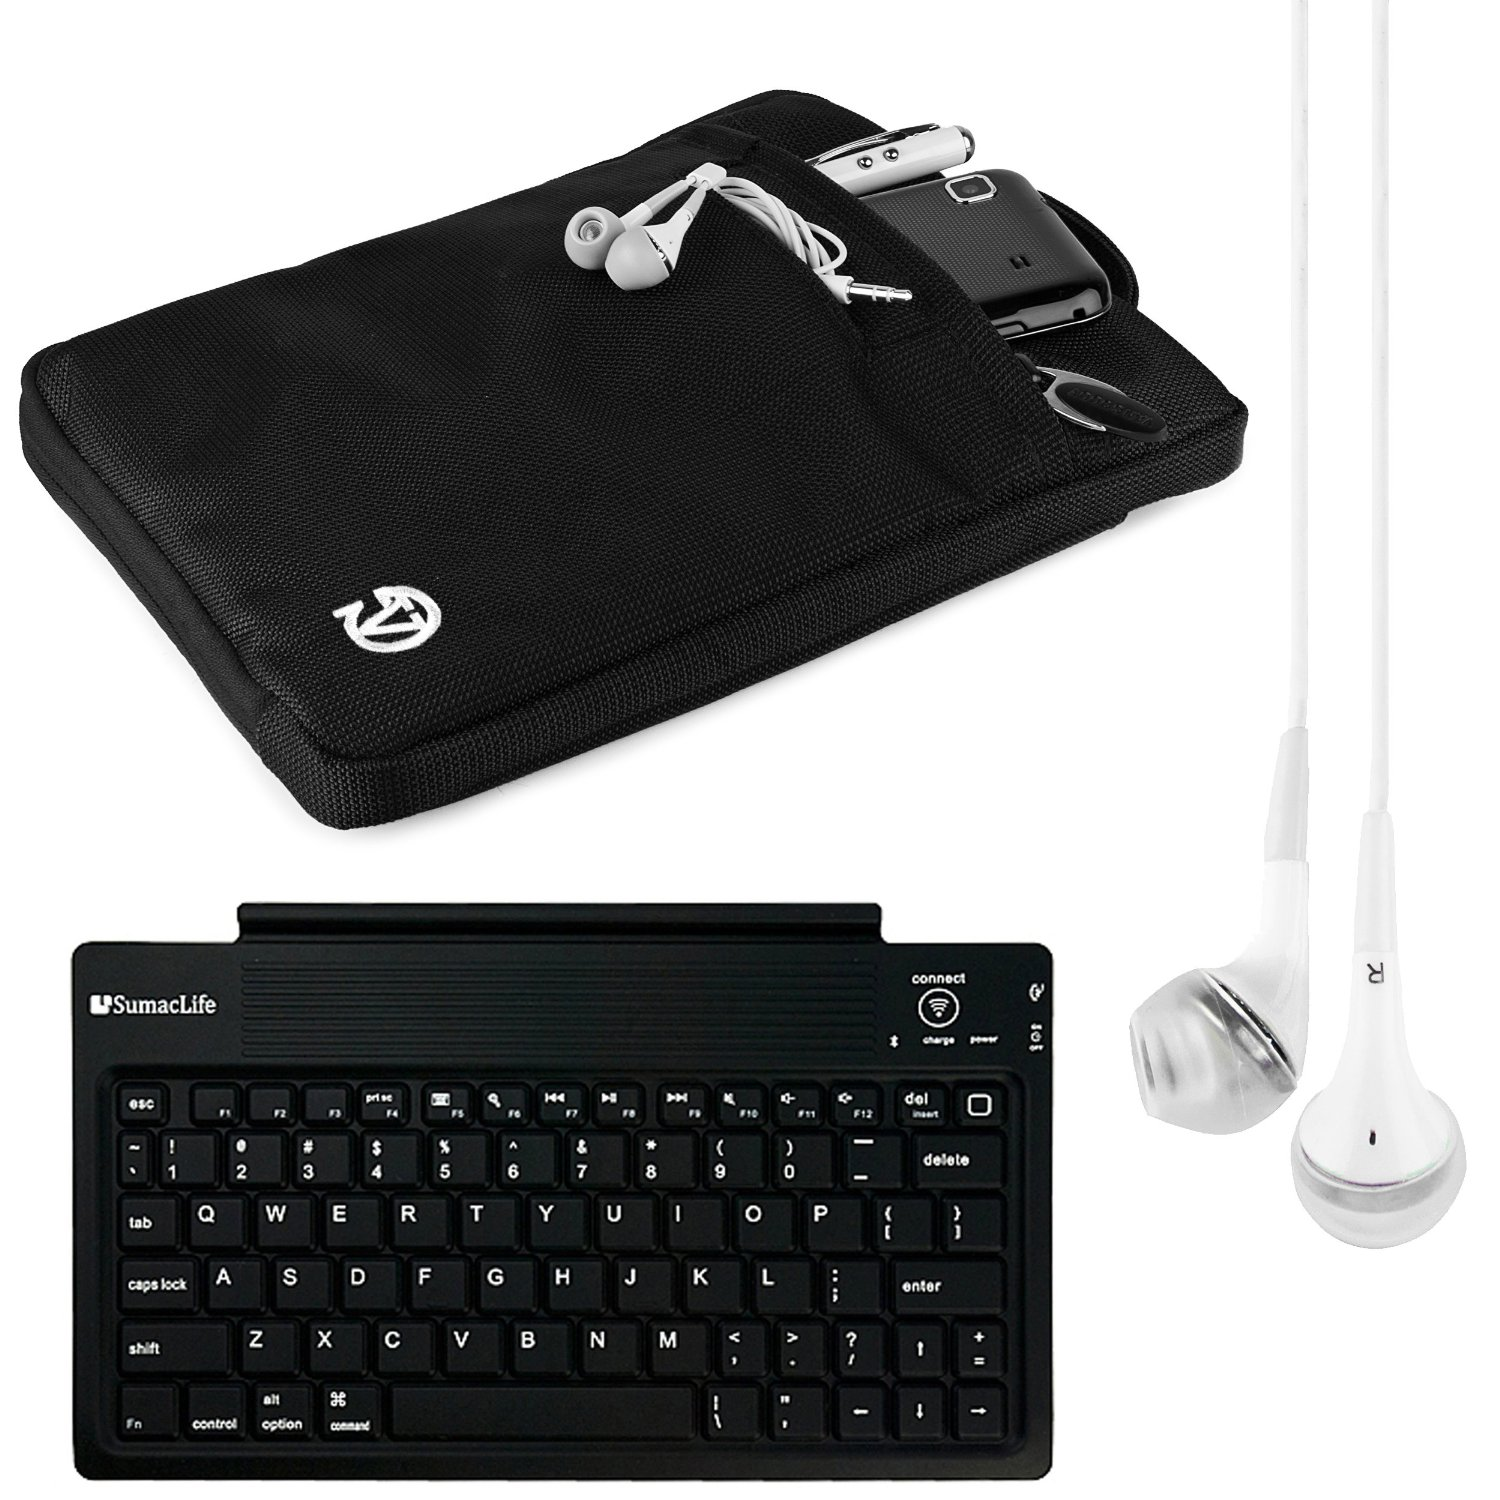 VanGoddy Hydei 7 to 8-inch Tablet Sleeve for Visual Land Prestige with Bluetooth Keyboard & White Headphones (Black)